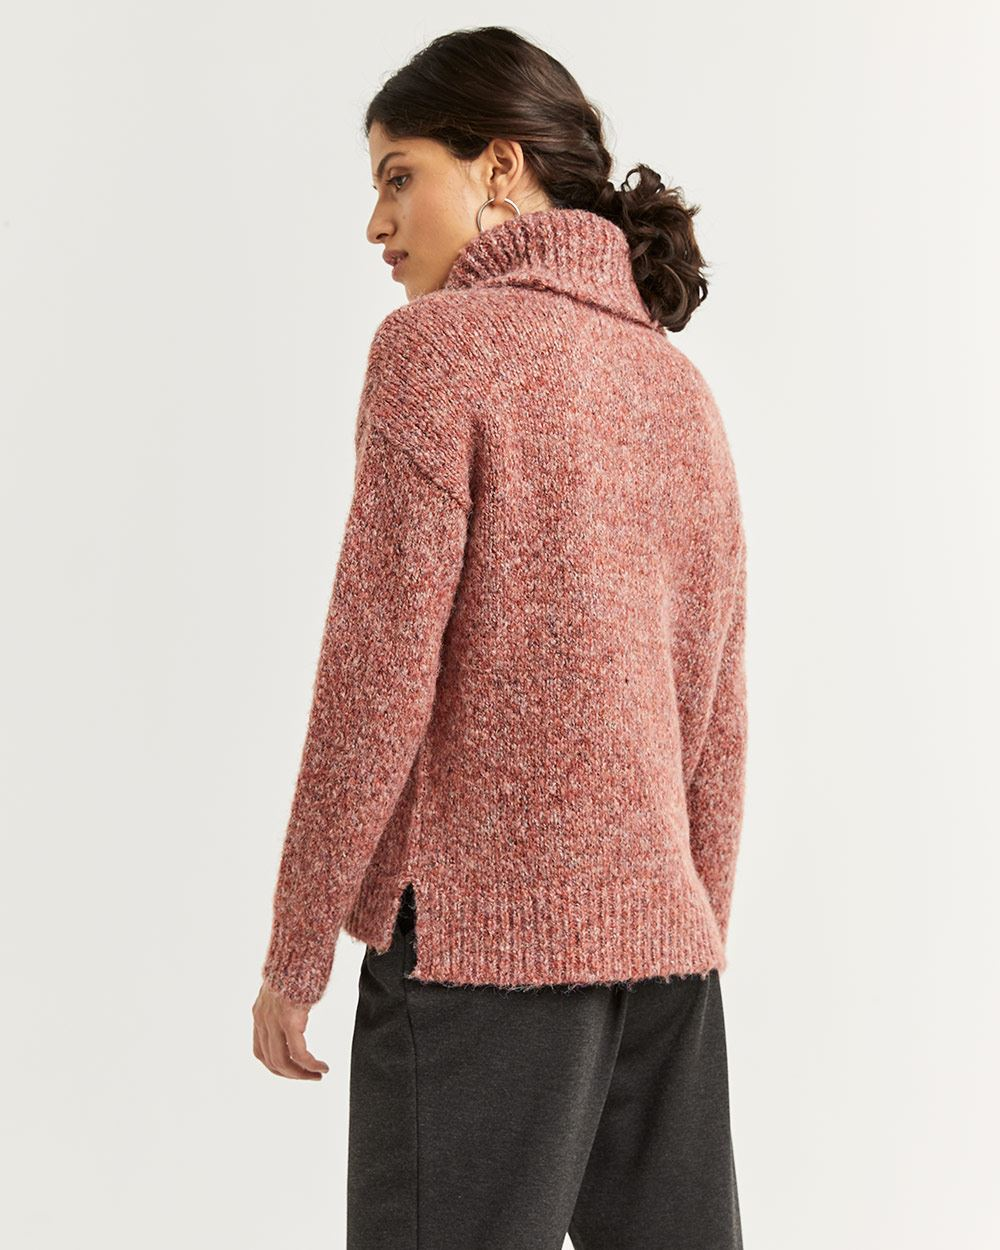 Wide Turtleneck Marled Sweater